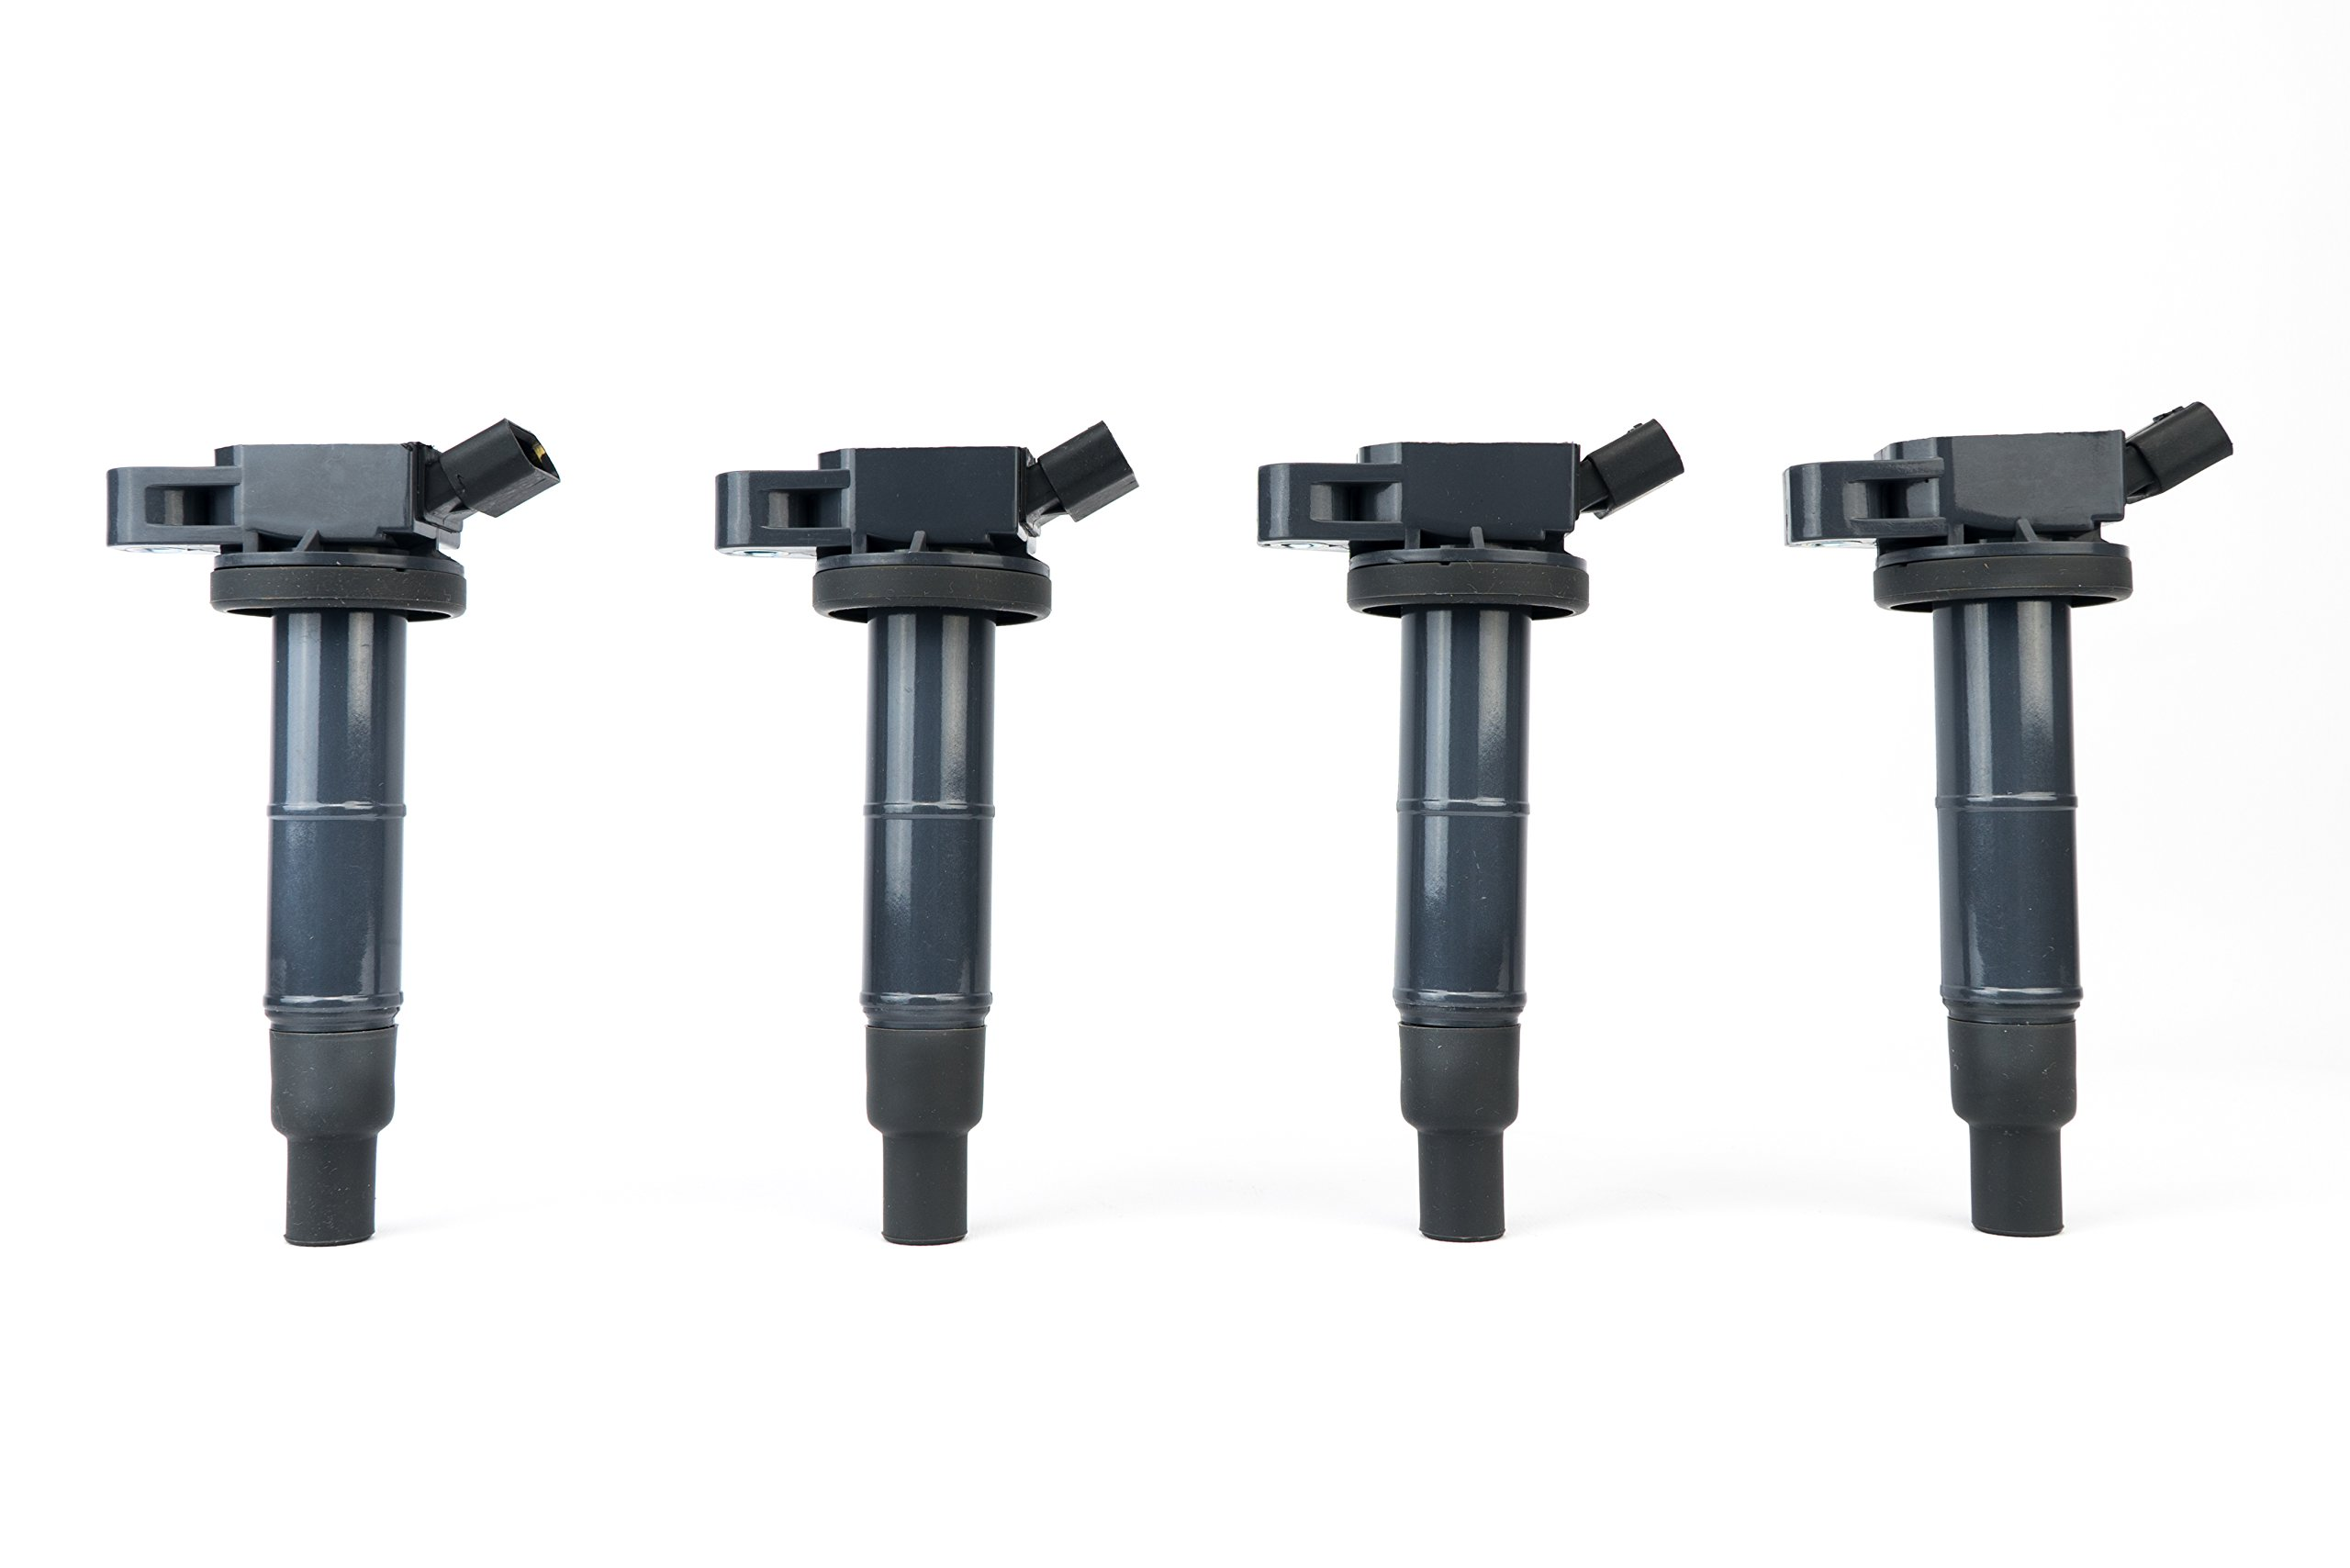 Ignition Coil Pack Set of 4 - Fits Toyota Camry, Corolla, Solara, RAV4, Scion tC, xB, Lexus HS250h & More 2.0L & 2.4L models- Replaces# 90919-02244, UF333, C1330, 6731307 - For Year Models 2001-2012 by AA Ignition